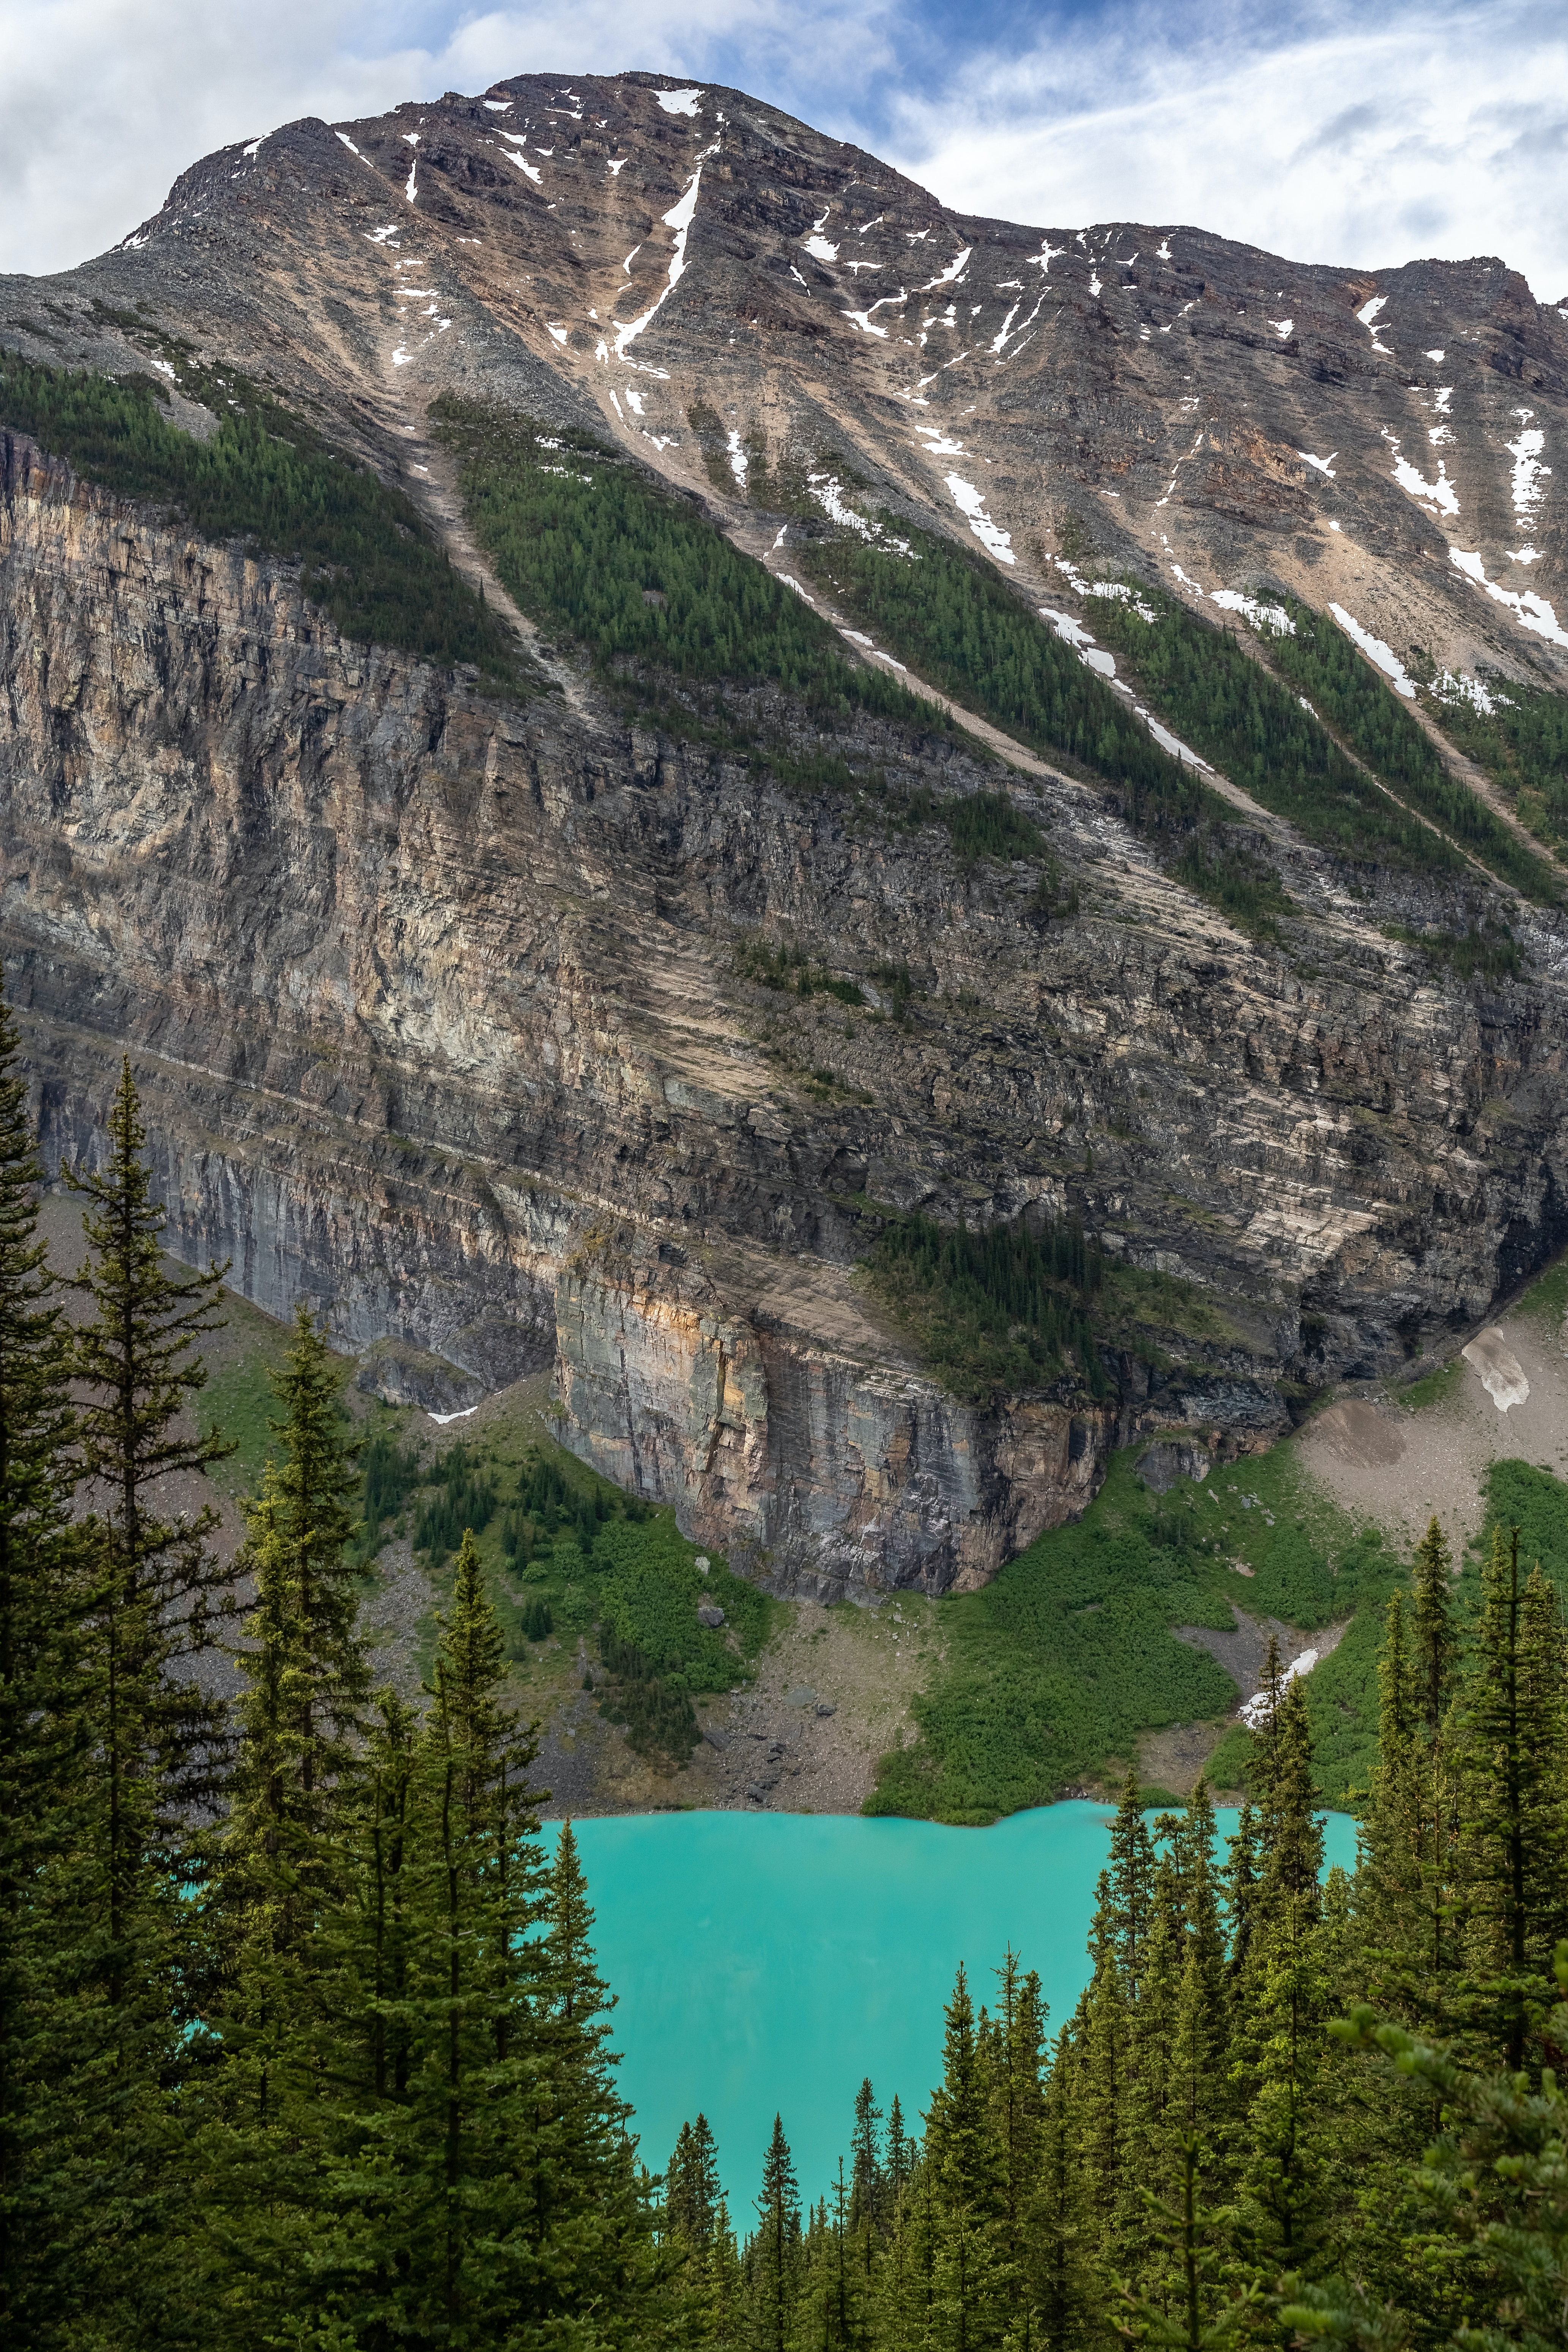 The rear part of Lake Louise as seen from the Lake Agnes Trail